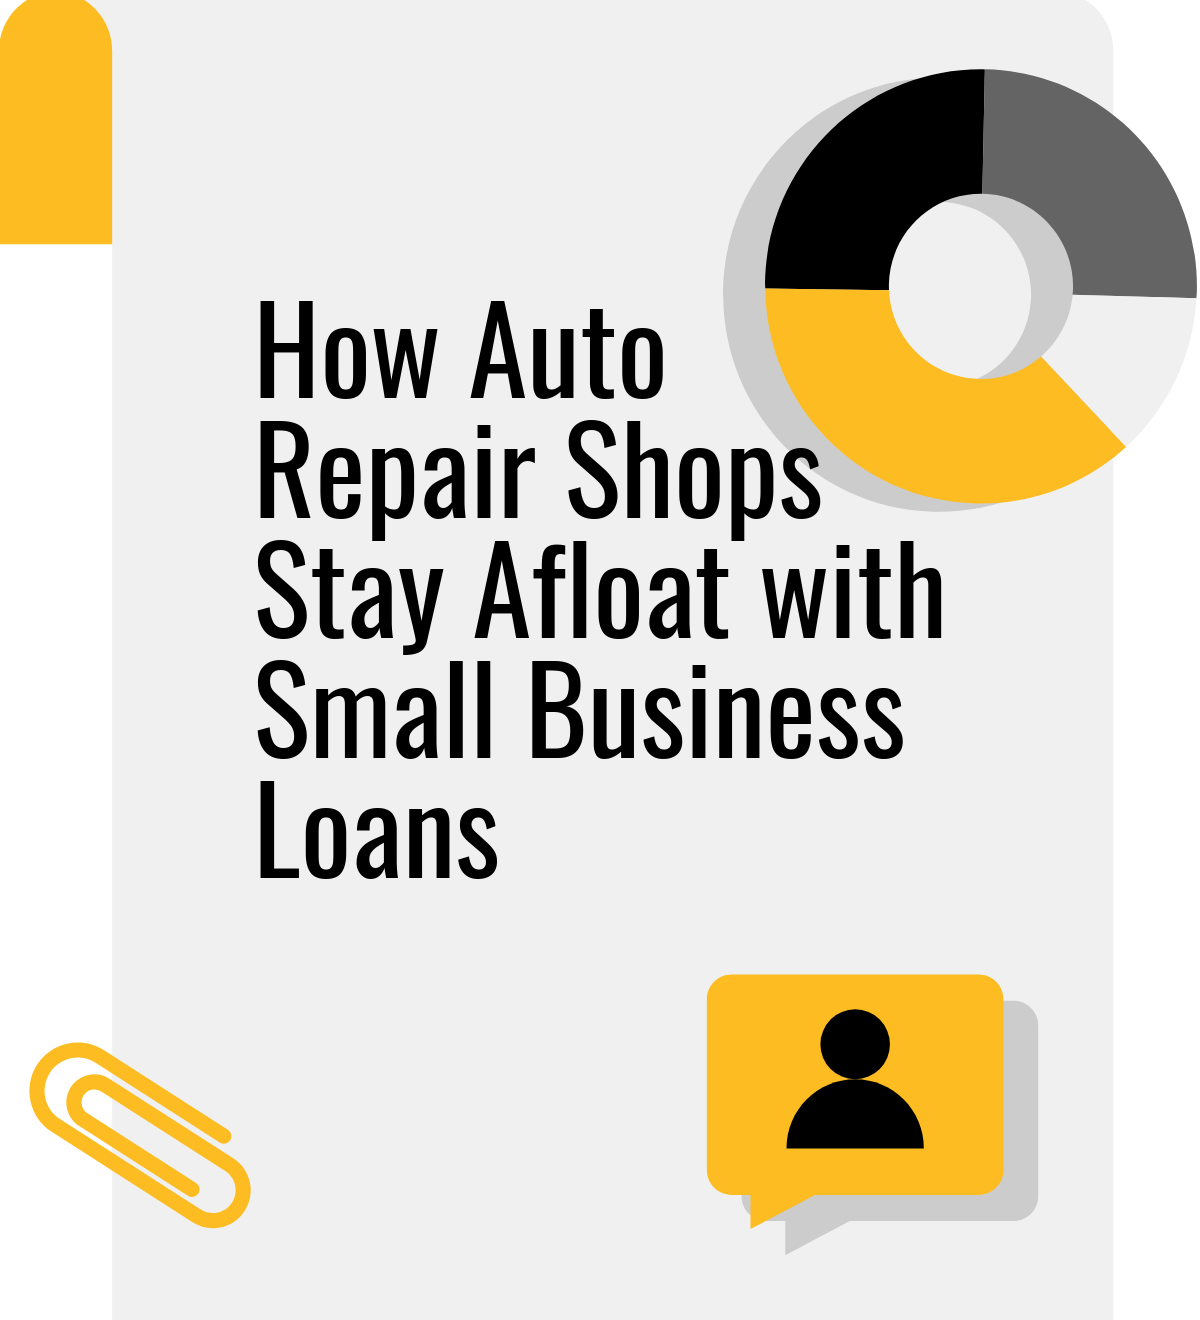 How Auto Repair Shops Stay Afloat with Small Business Loans